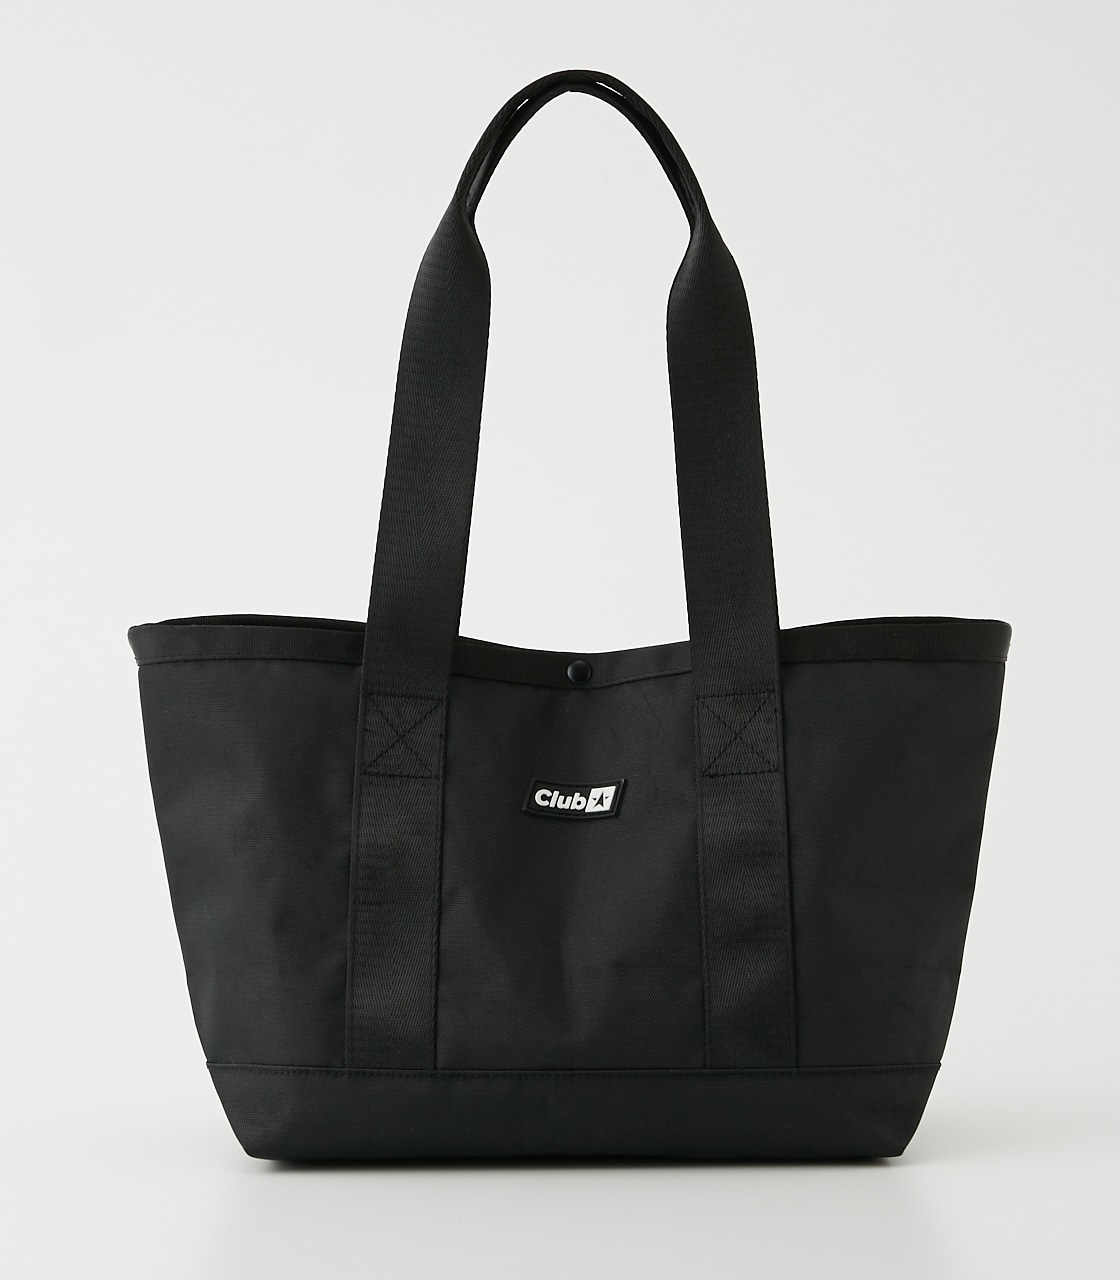 【AZUL BY MOUSSY】CLUBAZUL GET BEYOND TOTE BAG 詳細画像 BLK 3